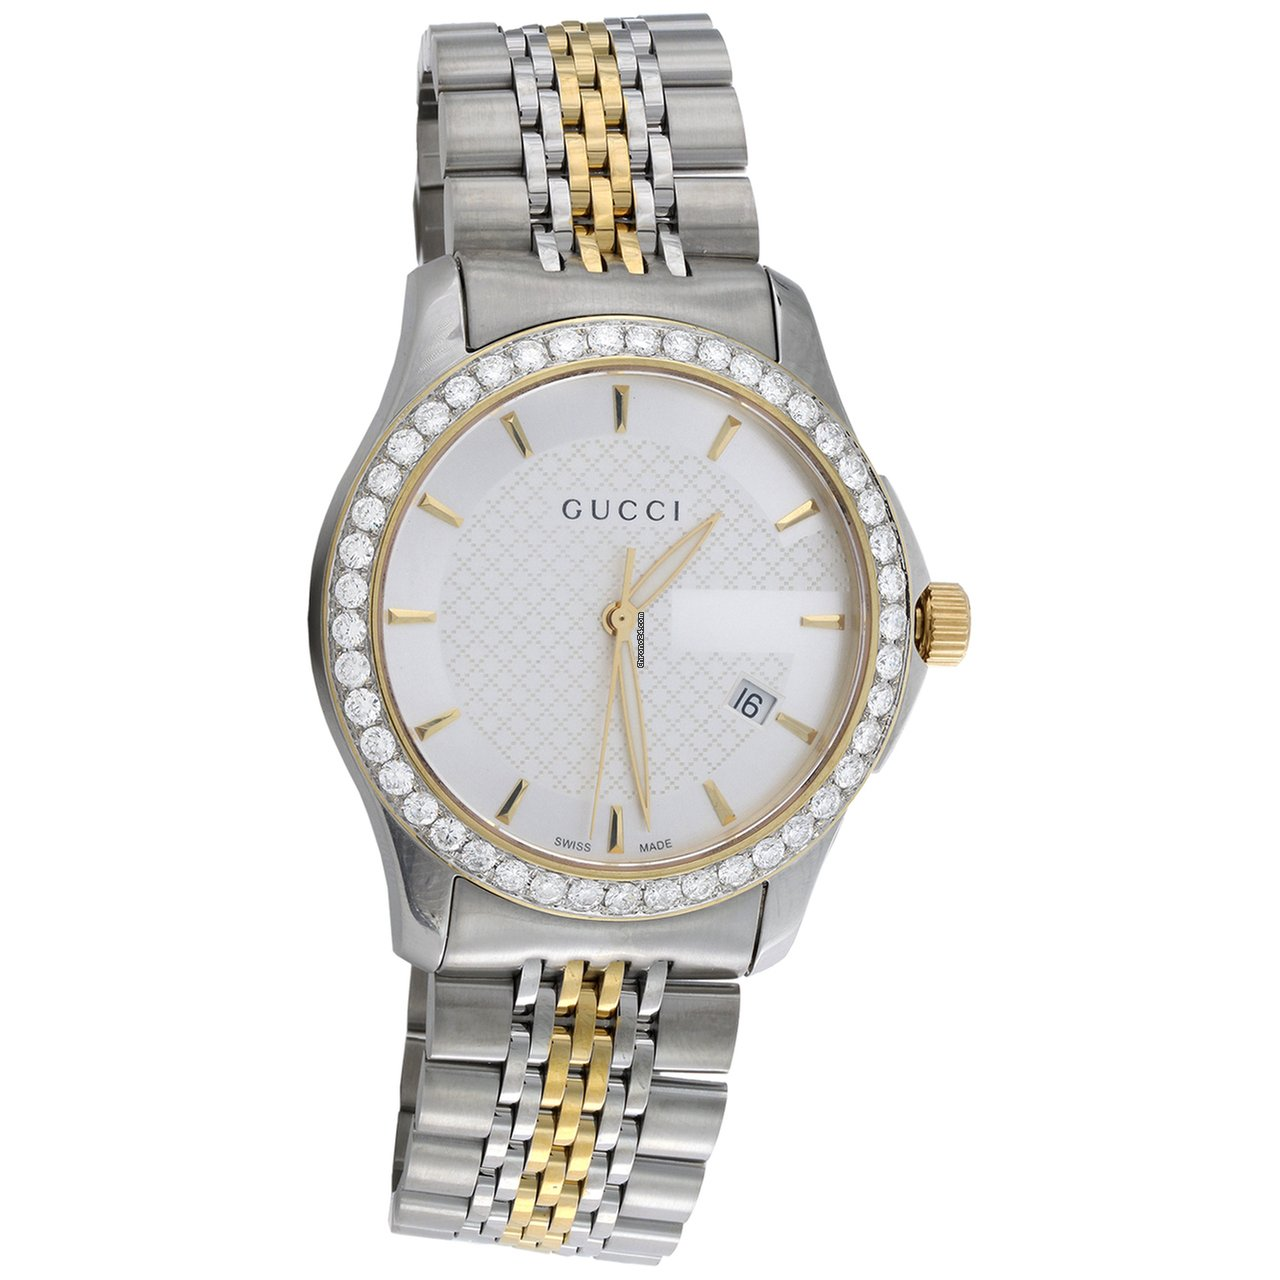 63c4a570f09 Gucci Ya126409 Diamond Watch G-Timeless 38mm Two Tone Yellow S. Steel PVD 2  CT.